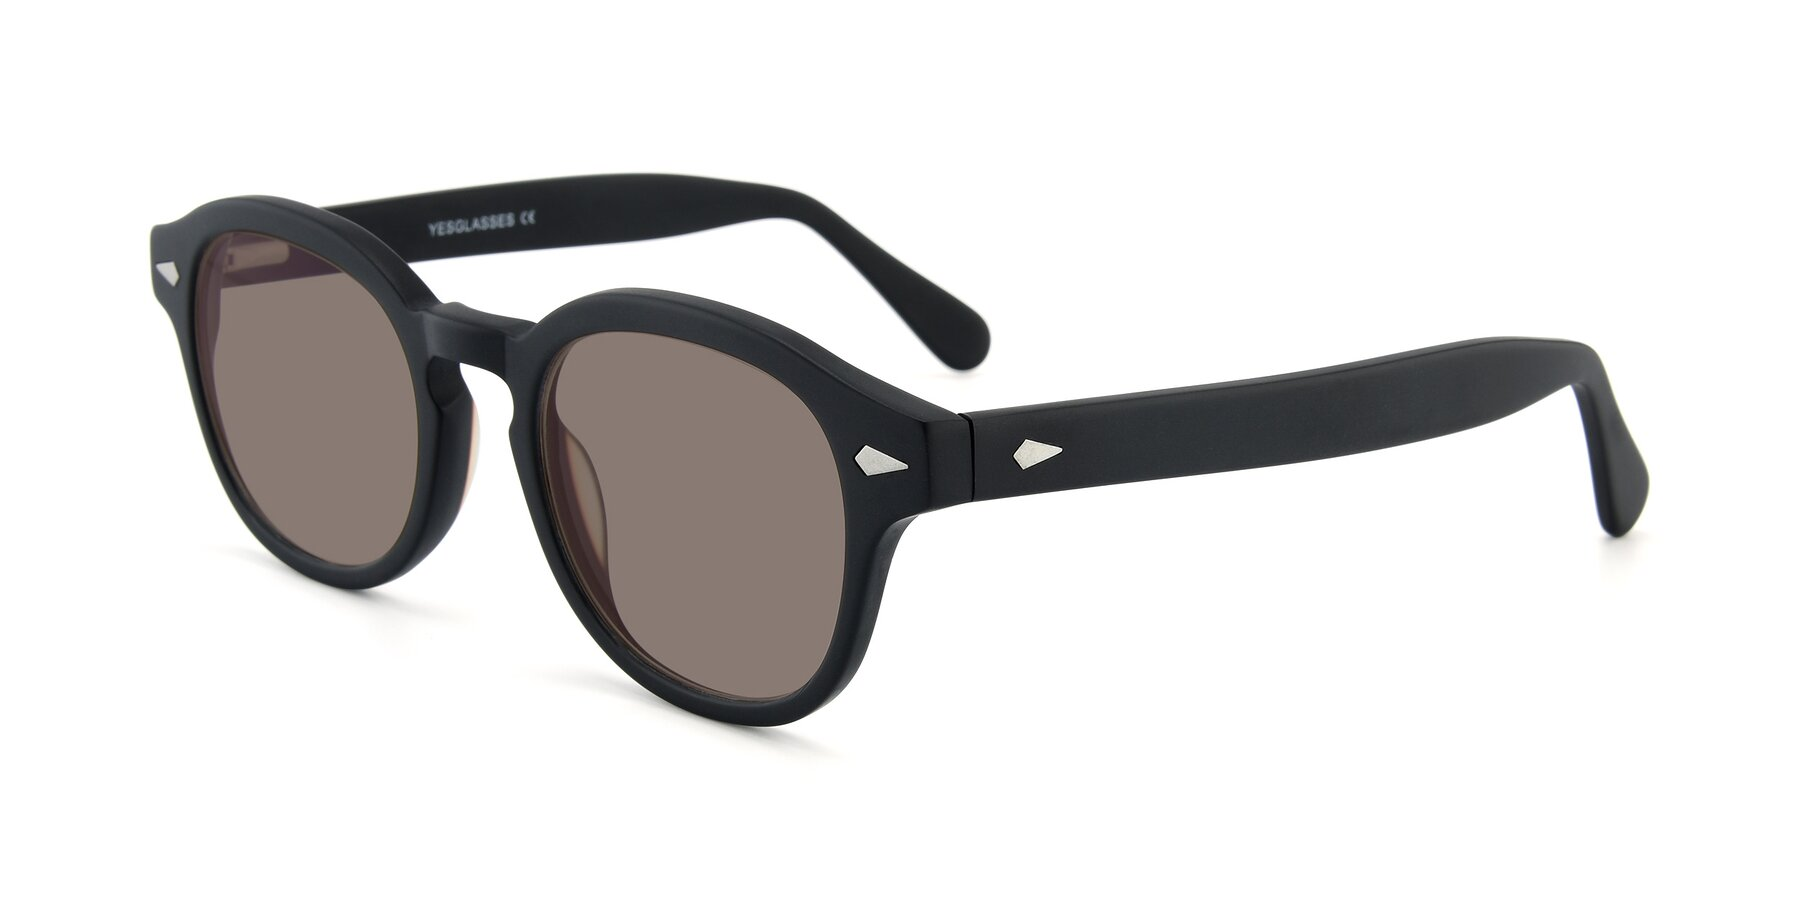 Angle of SR1609 in Matte Black with Medium Brown Tinted Lenses